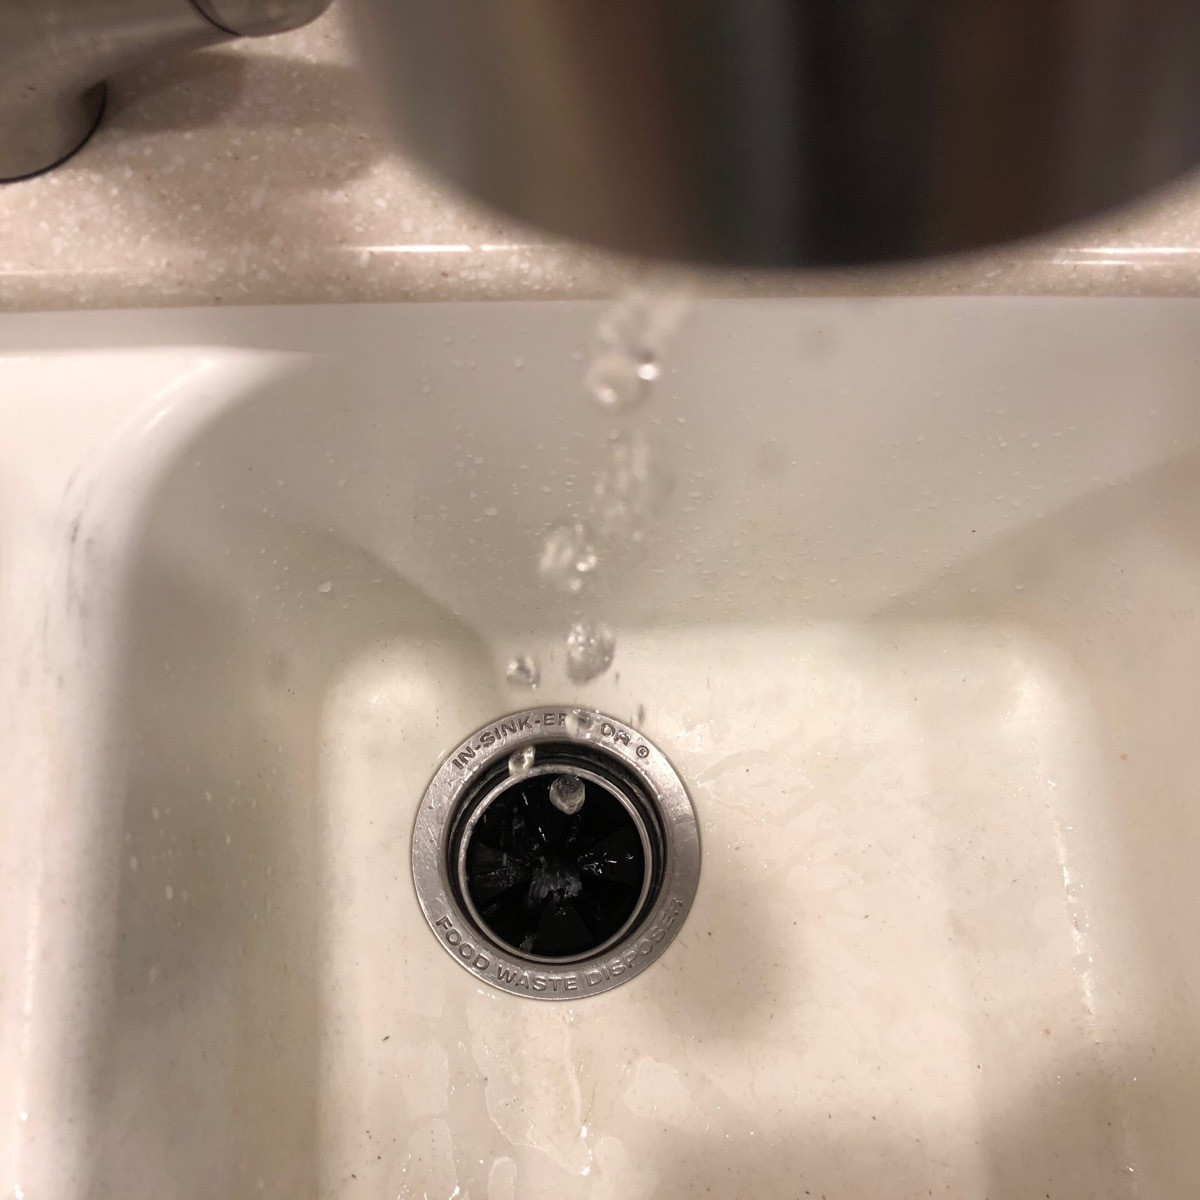 Dripping water